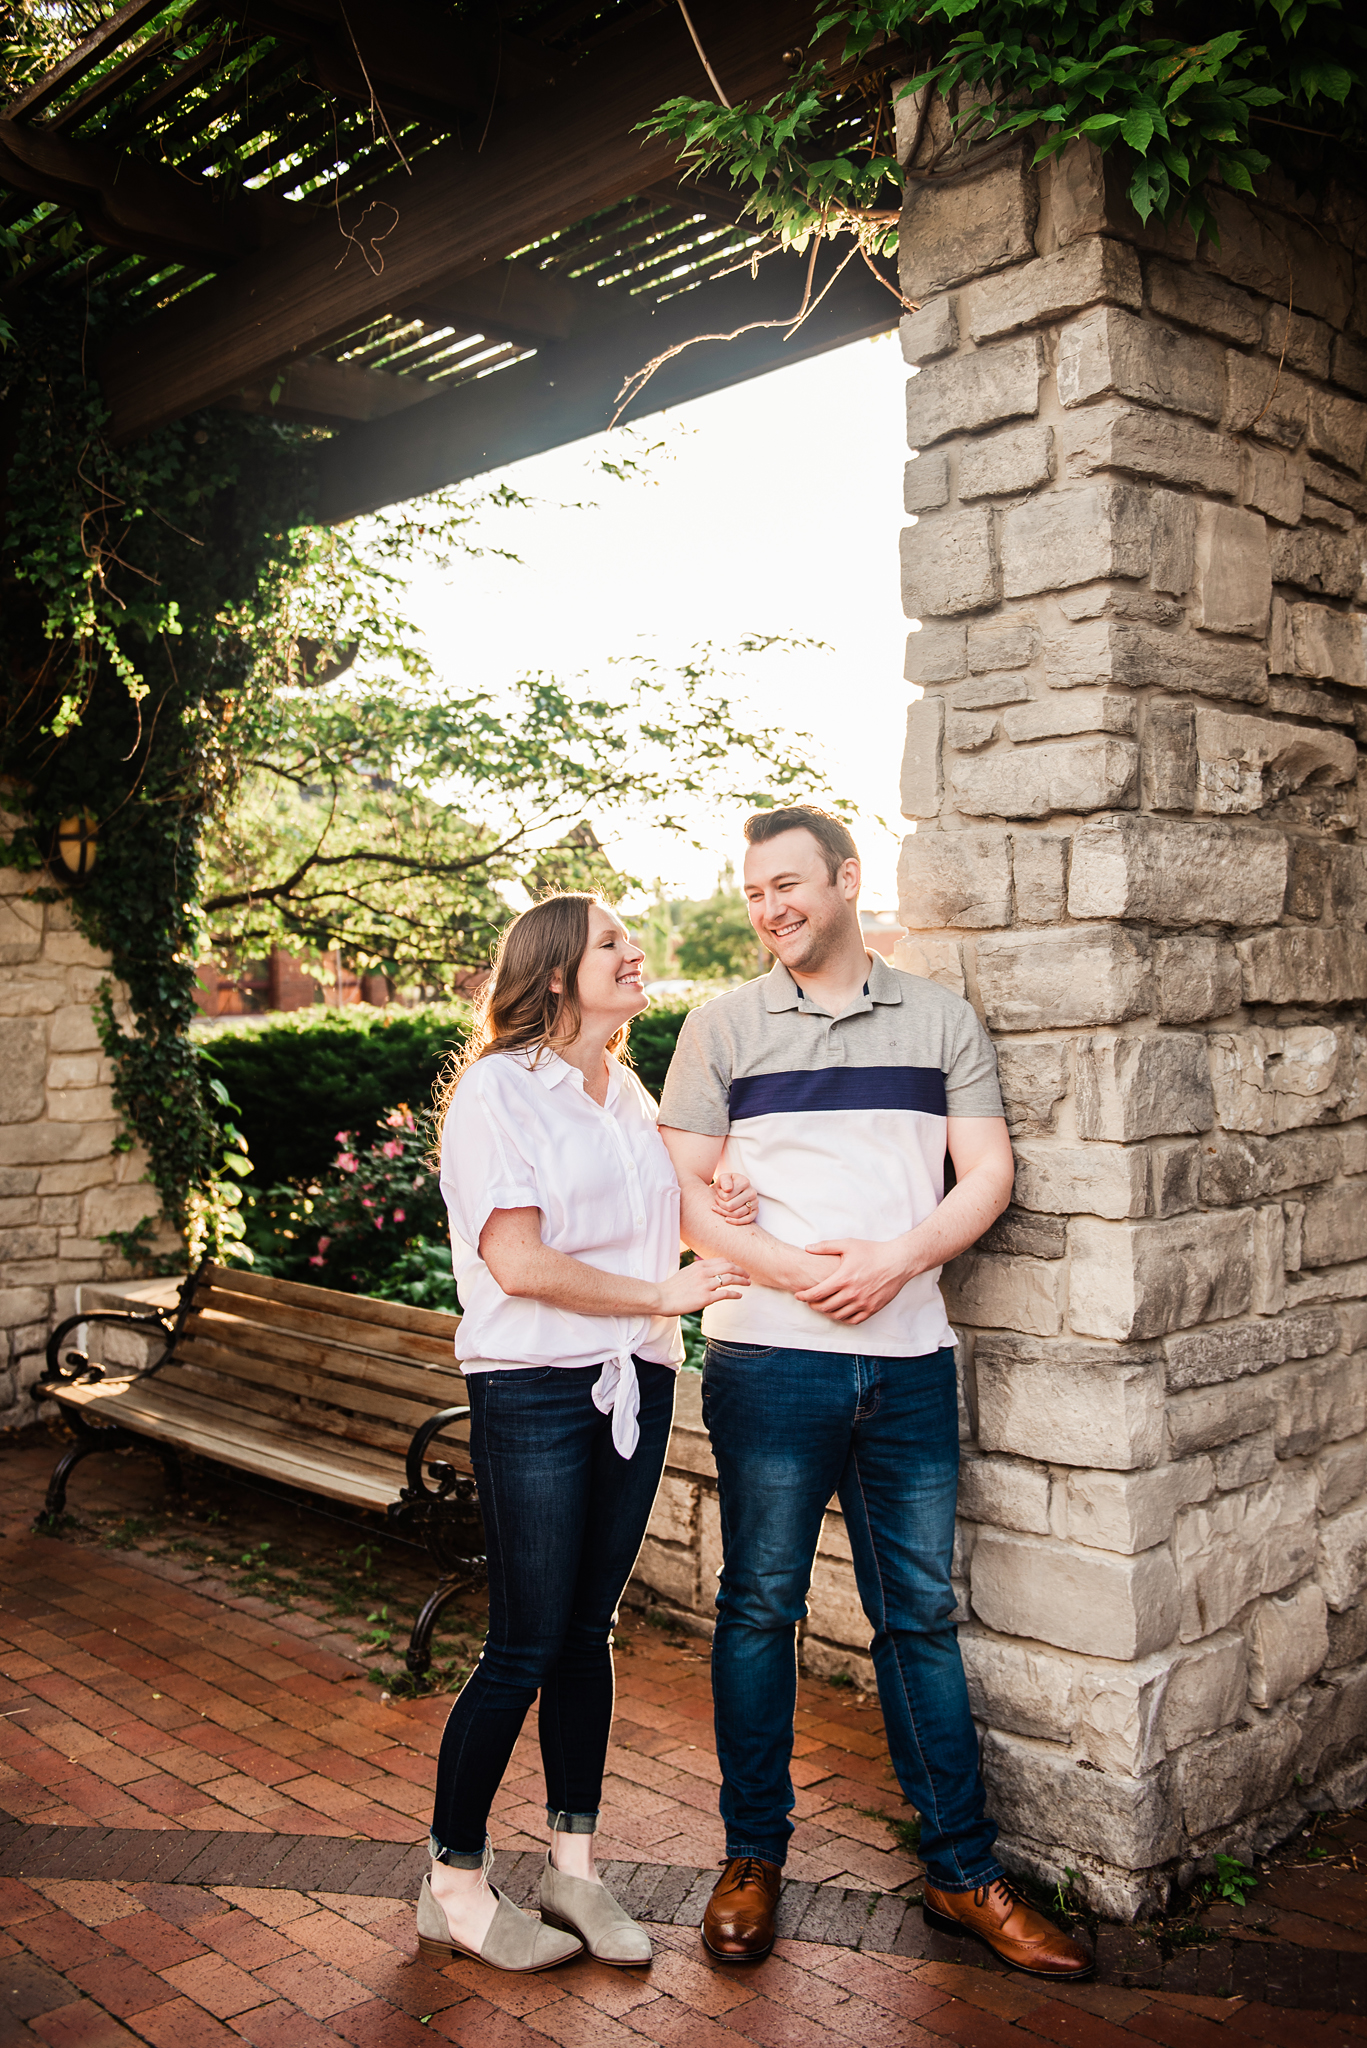 Franklin_Square_Park_Syracuse_Engagement_Session_JILL_STUDIO_Rochester_NY_Photographer_DSC_3952.jpg